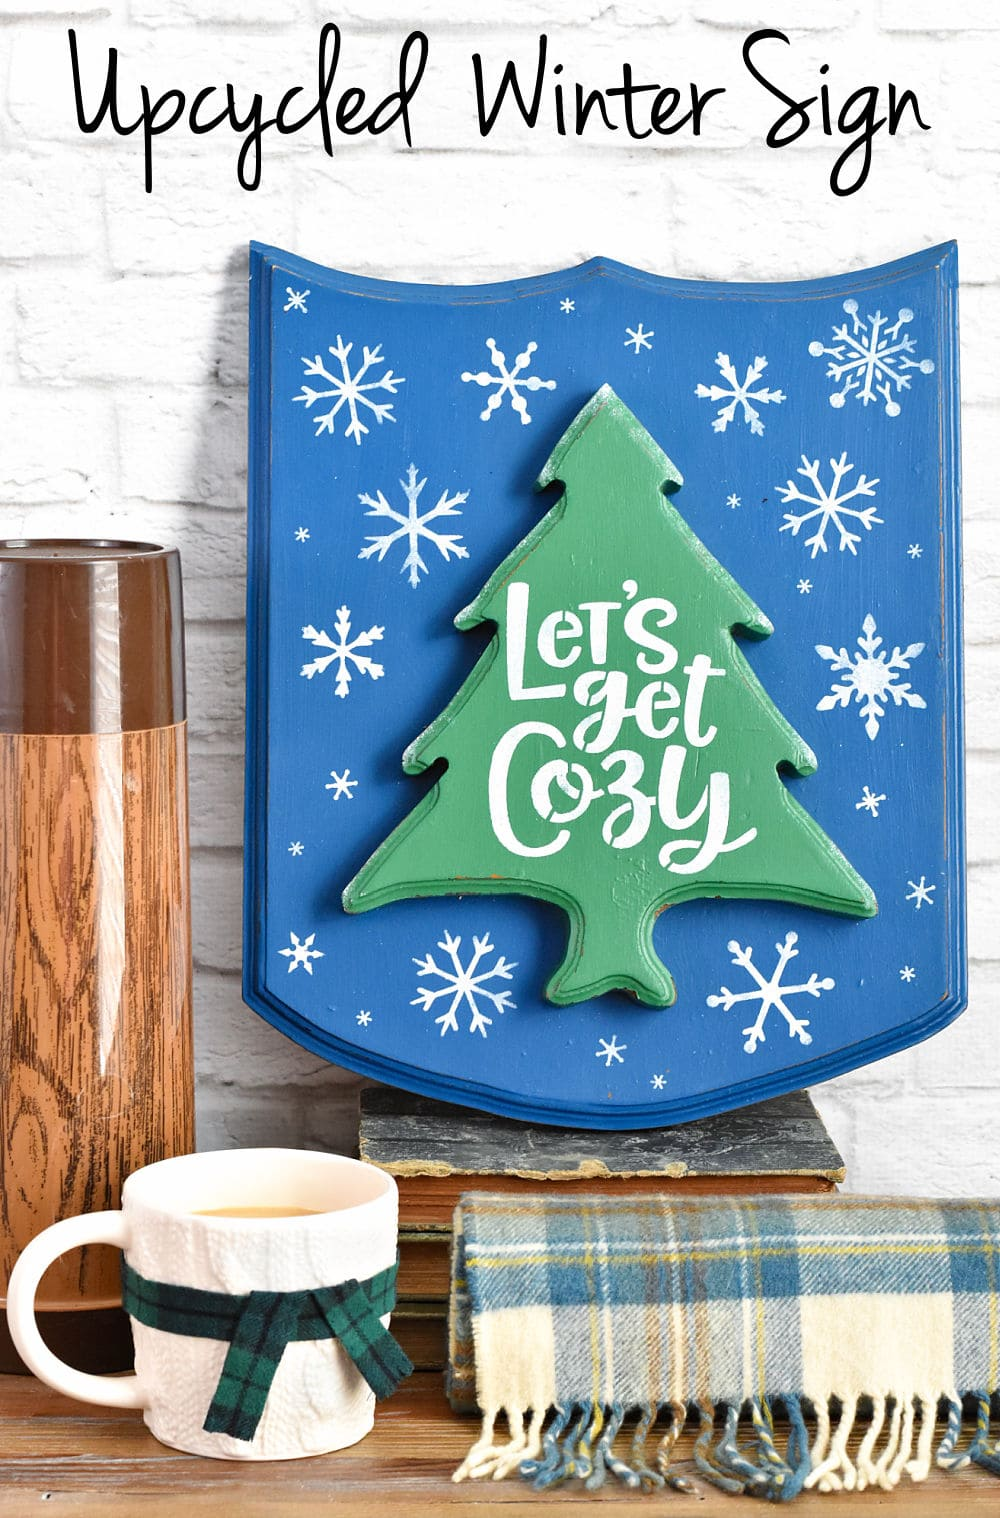 Upcycling a wood plaque as a winter sign